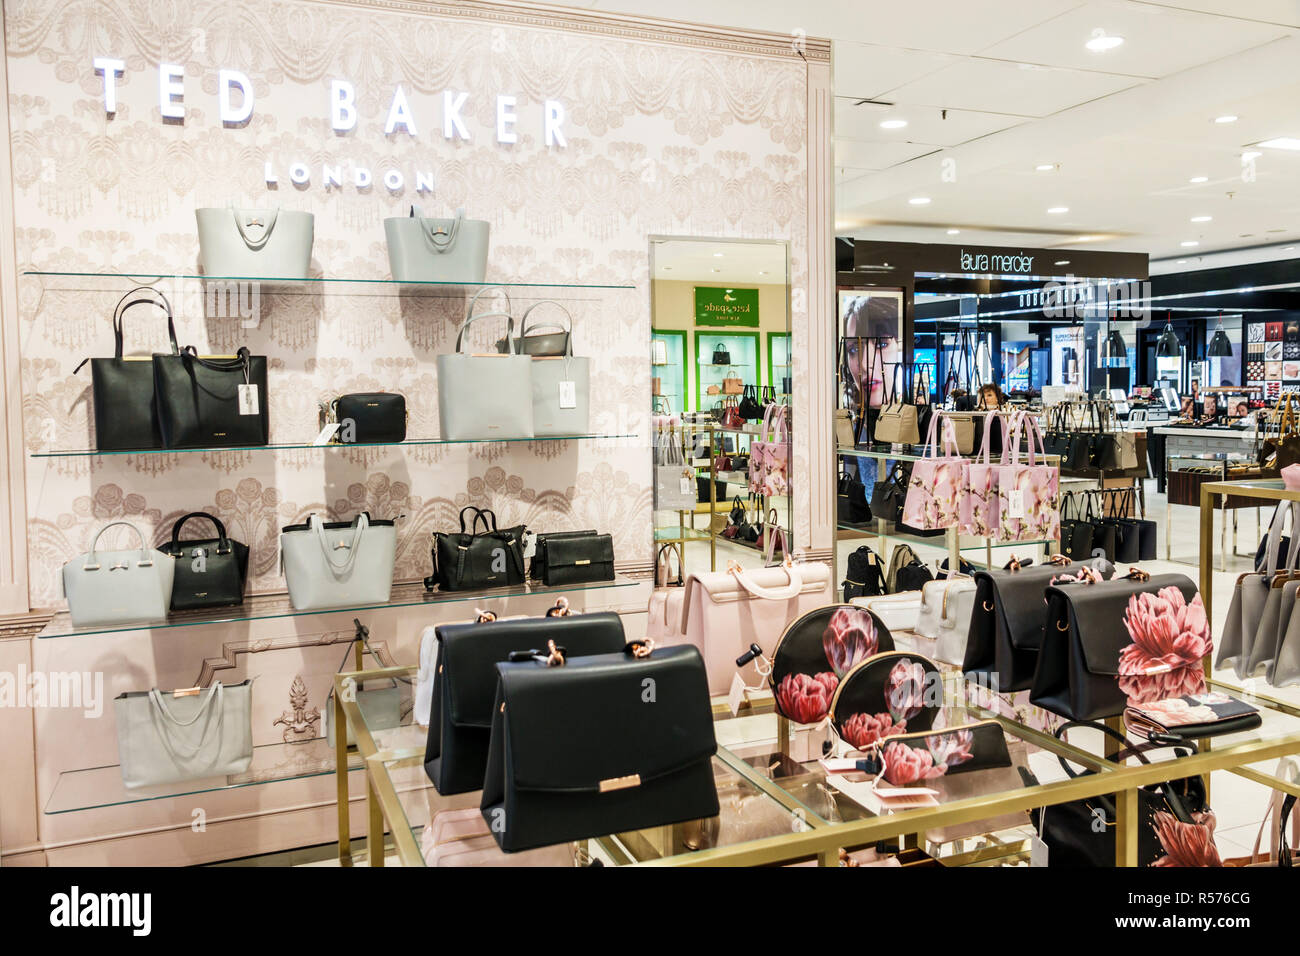 922c86bf4 United Kingdom Great Britain England London Westminster Victoria House of  Fraser shopping department store under bankruptcy administration handbags Te